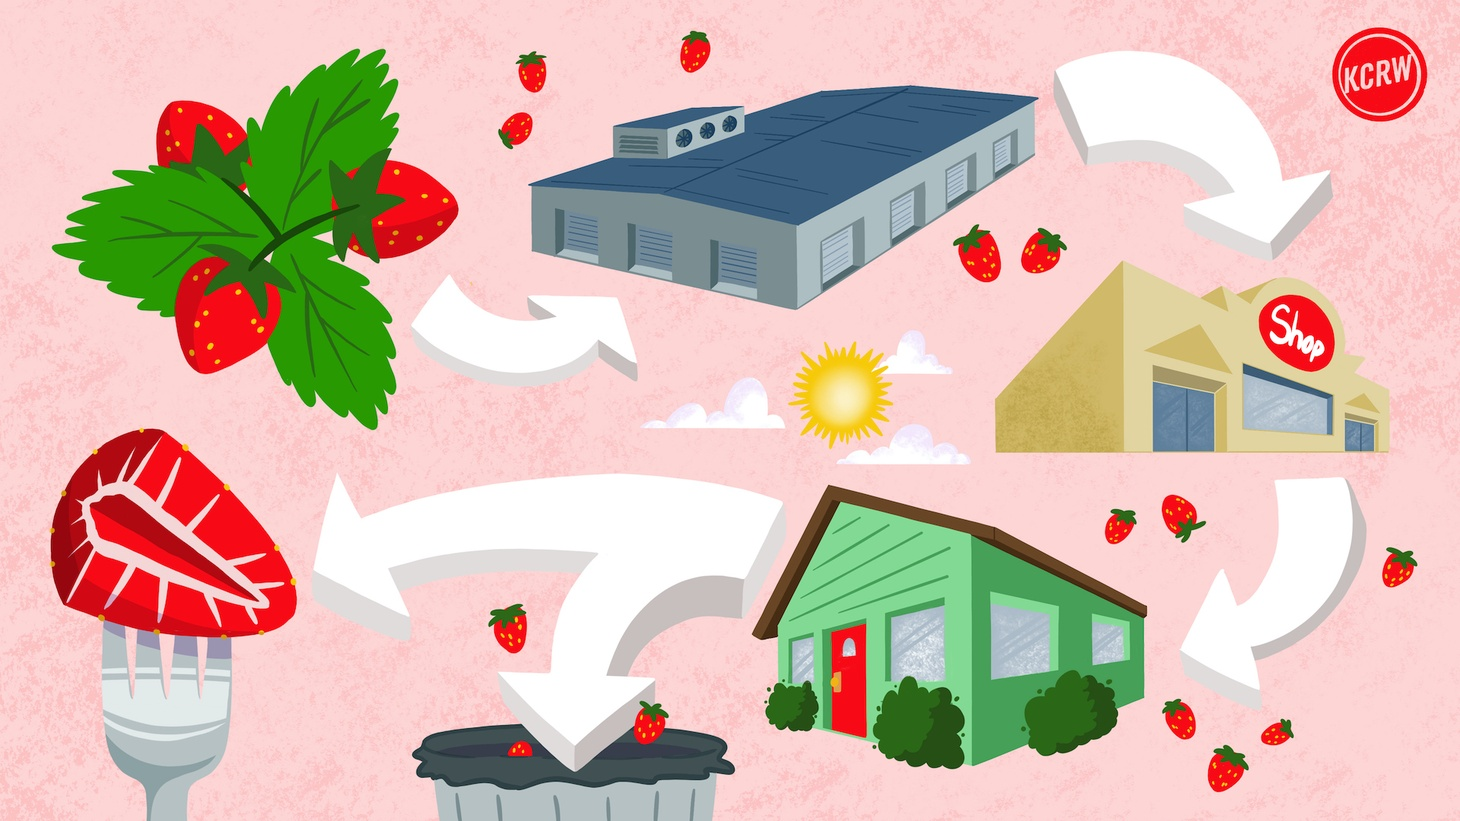 To illustrate California's food waste crisis, KCRW follows a strawberry as it begins on a farm and finally ends up in a person's meal or trash can.